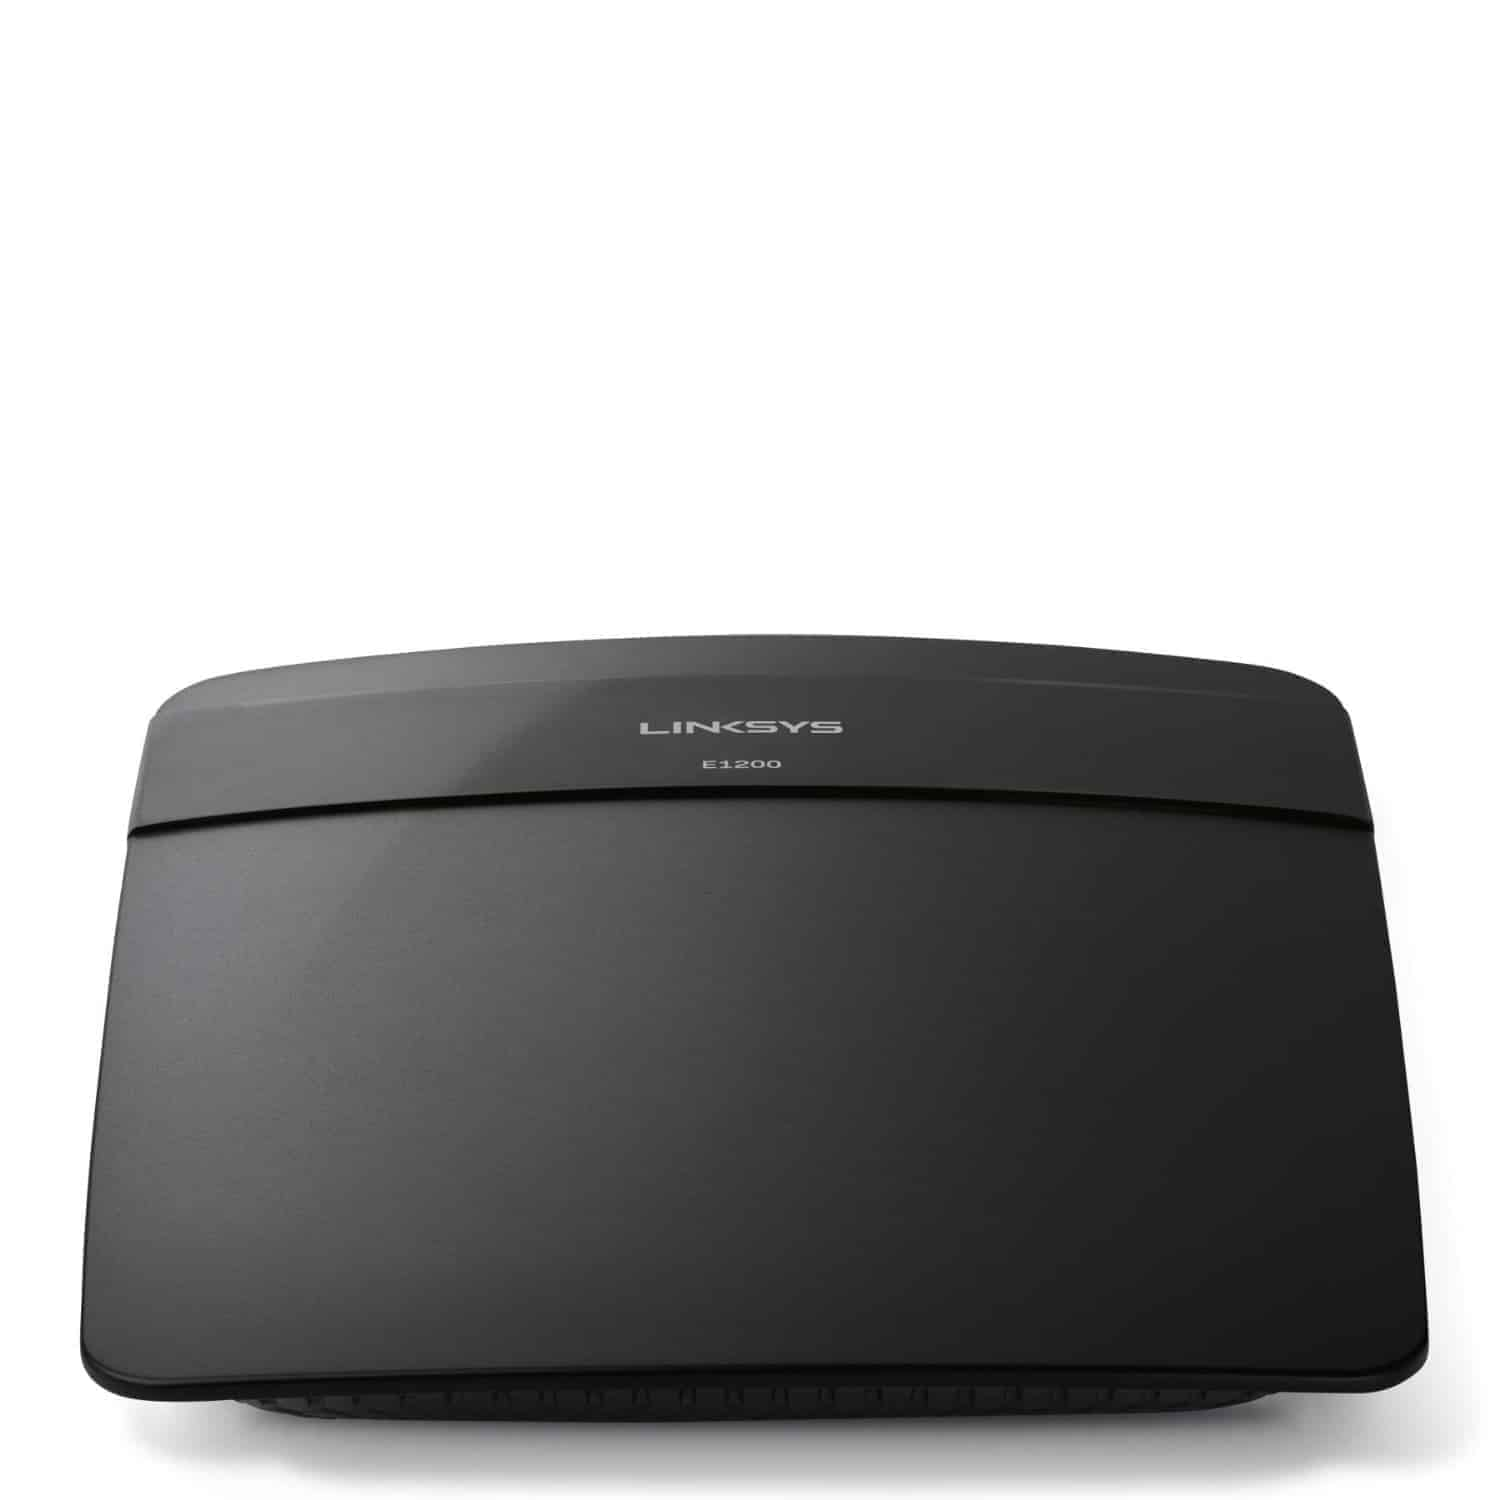 Cisco Linksys e1200 Wireless n router user Manual